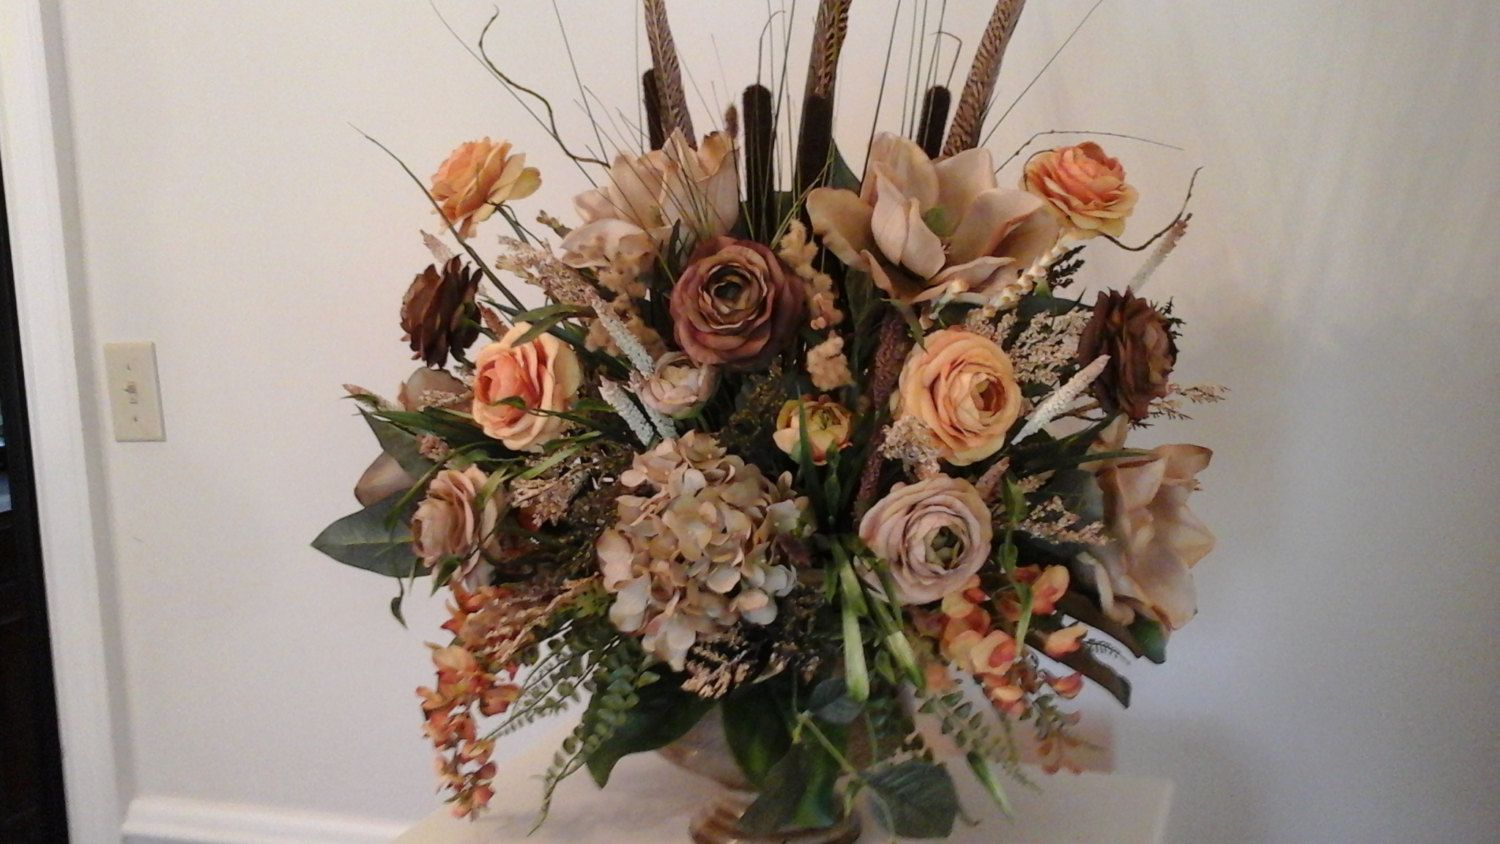 Floral Arrangement Magnolia Centerpiece Shipping Included Large Silk Floral Summer Table A Floral Arrangements Silk Floral Arrangements Magnolia Centerpiece